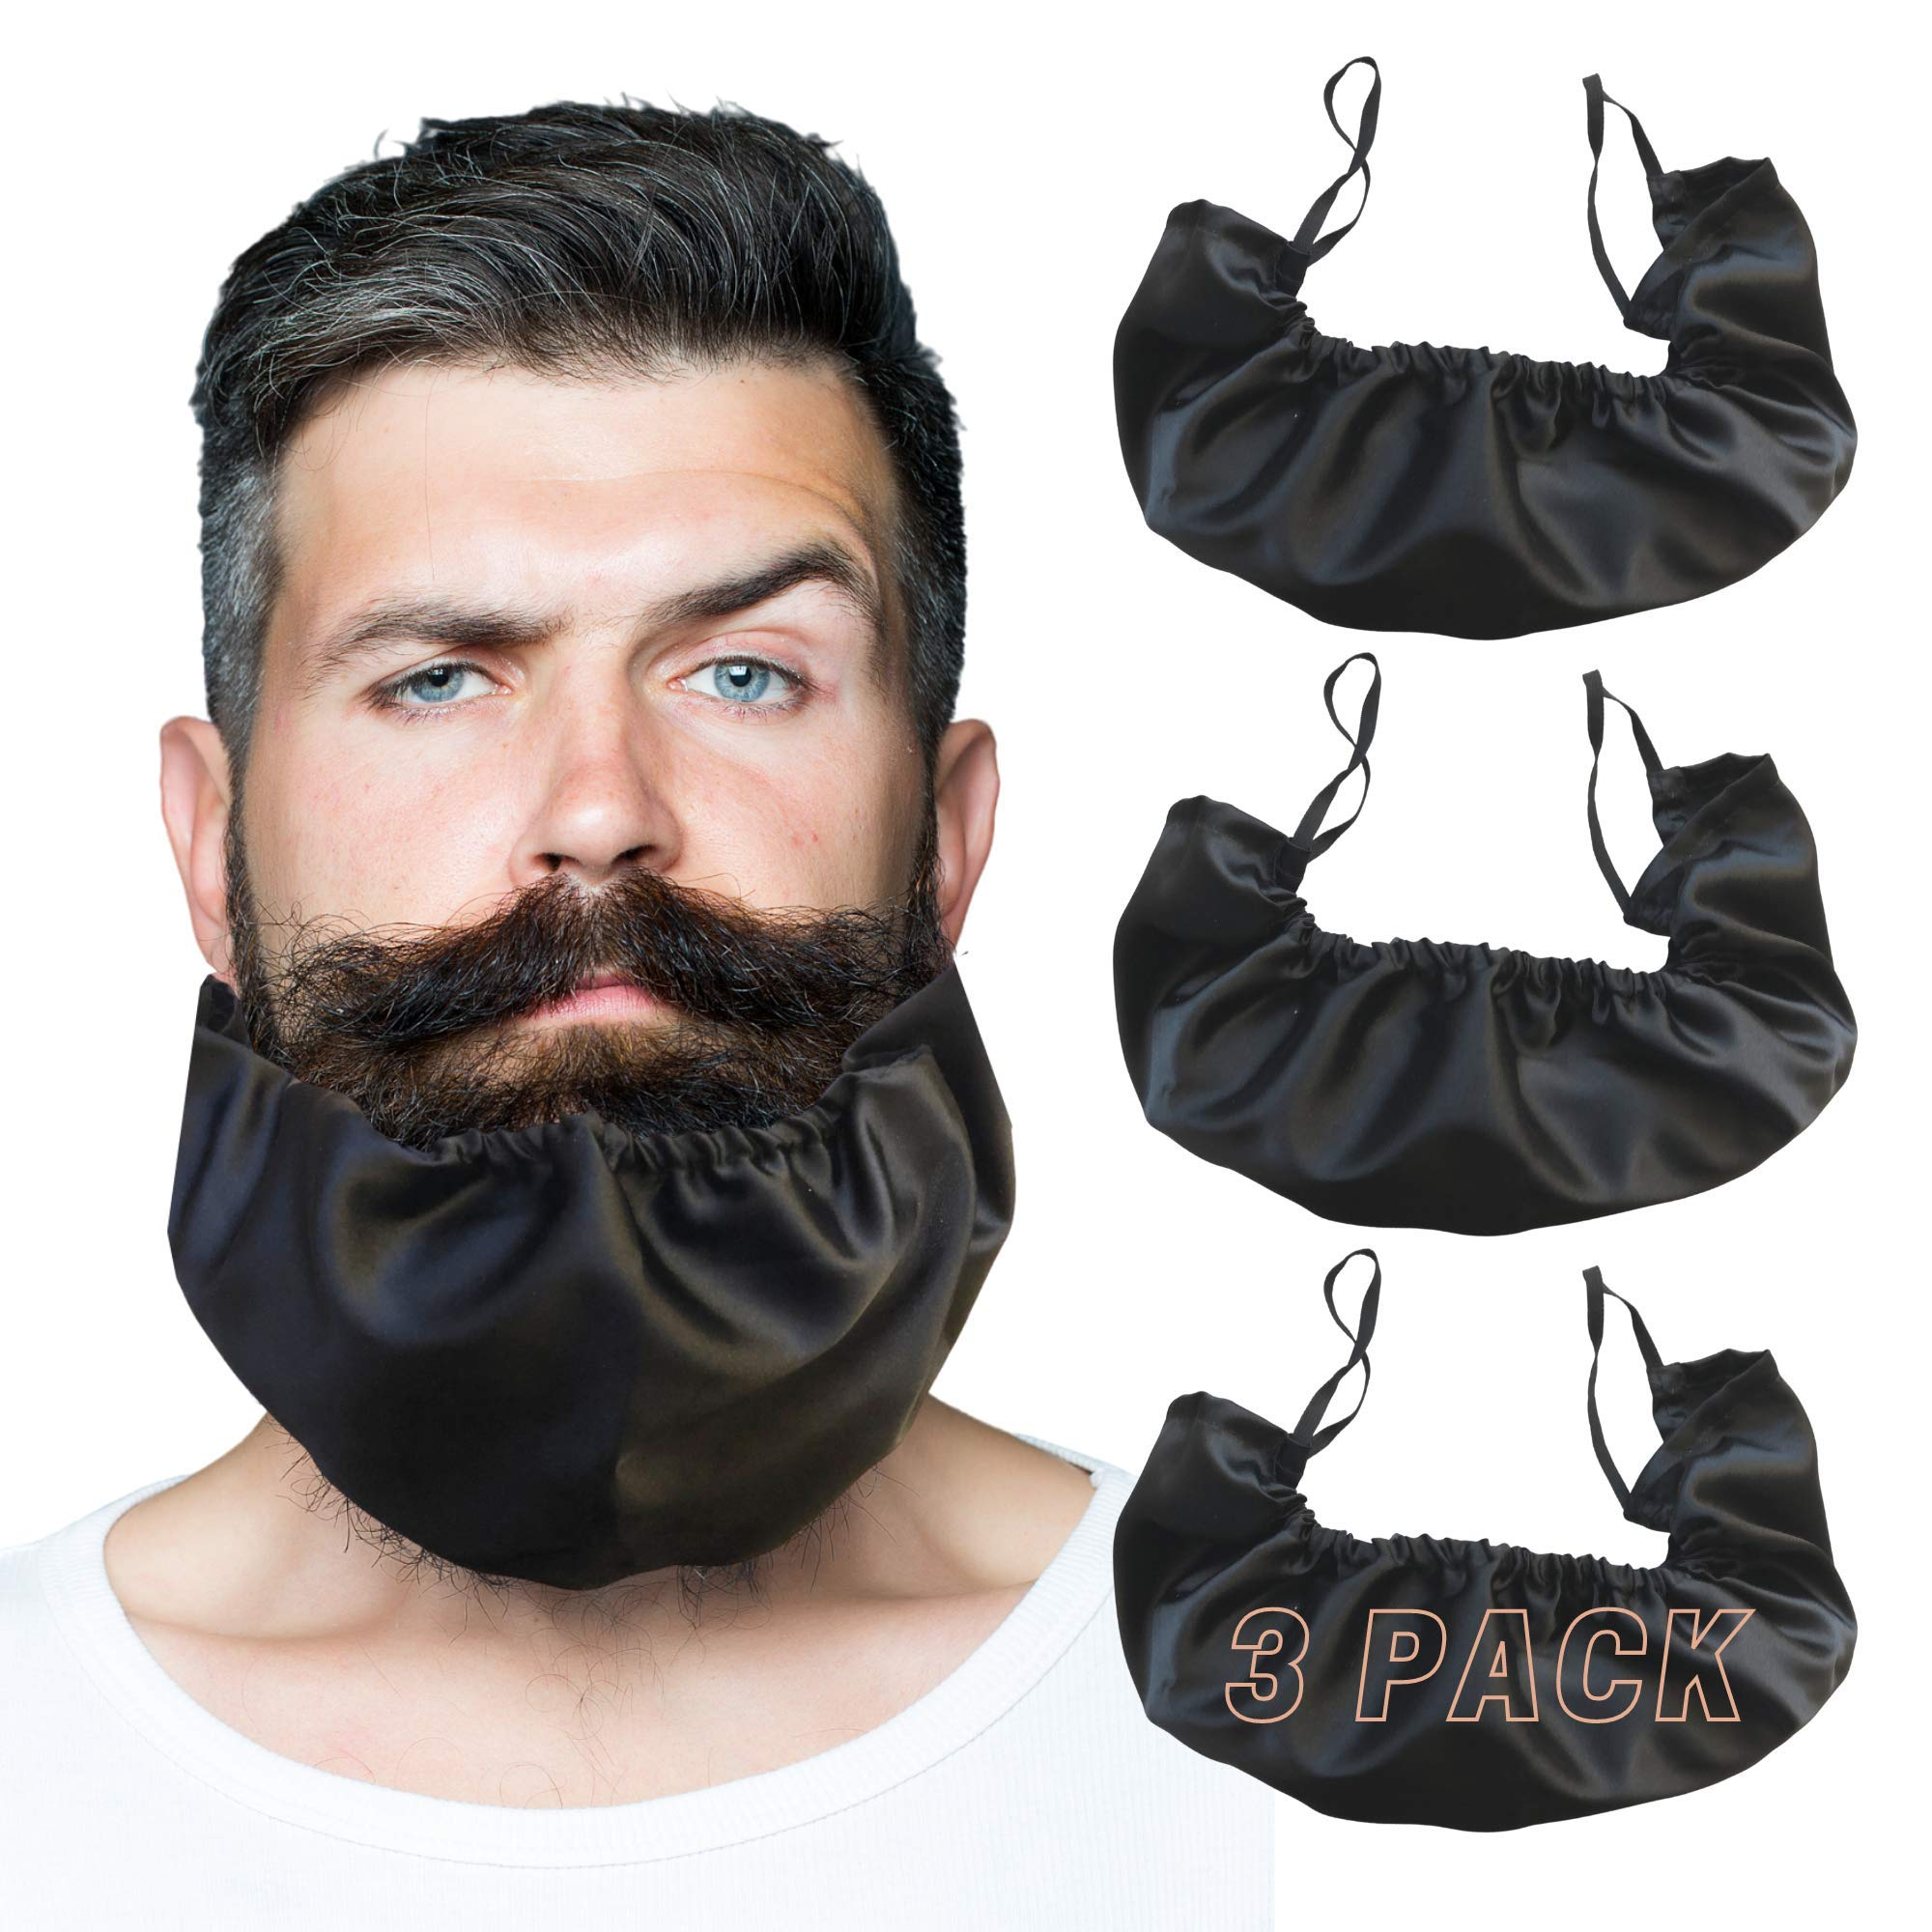 Beard Bandana Black 3 Pack XL Size, Beard Bib Bonnet Facial Apron Caps Beard Guard